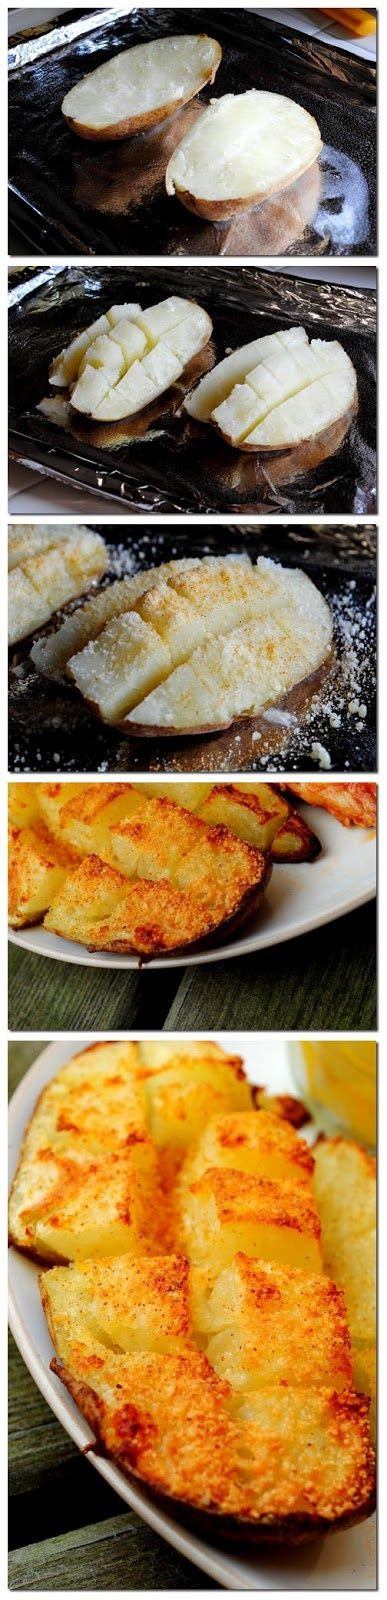 Seasoned Roasted Potatoes--cook in microwave, cut, sprinkle with butter, parmesan, and Lawry's, broil for 10-15 minutes.